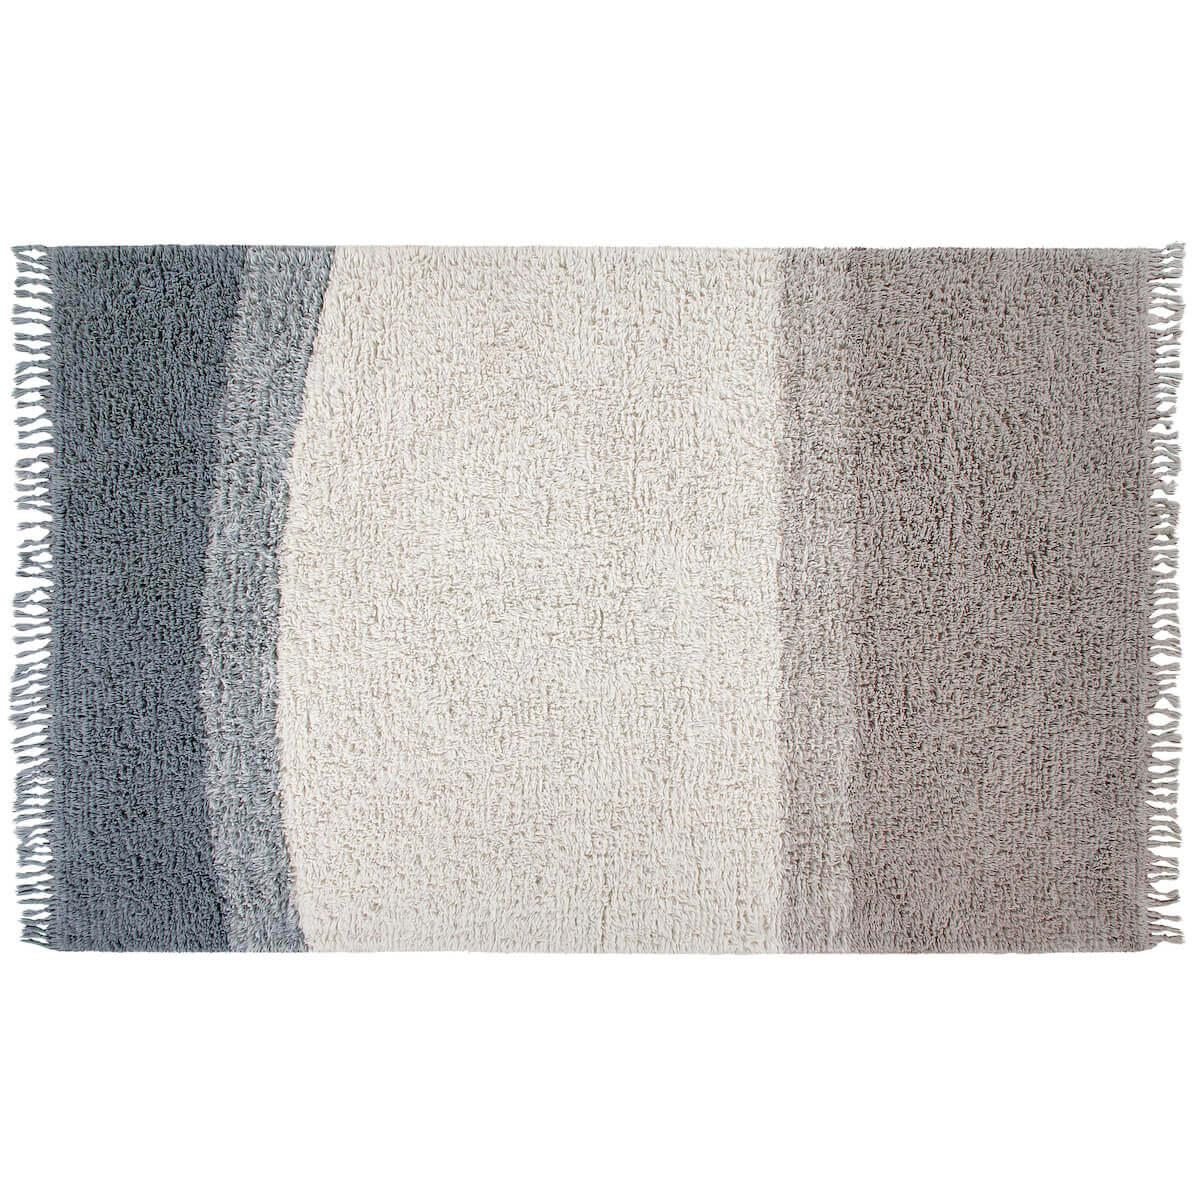 Tapis 200x140cm INTO THE BLUE Lorena Canals woolable